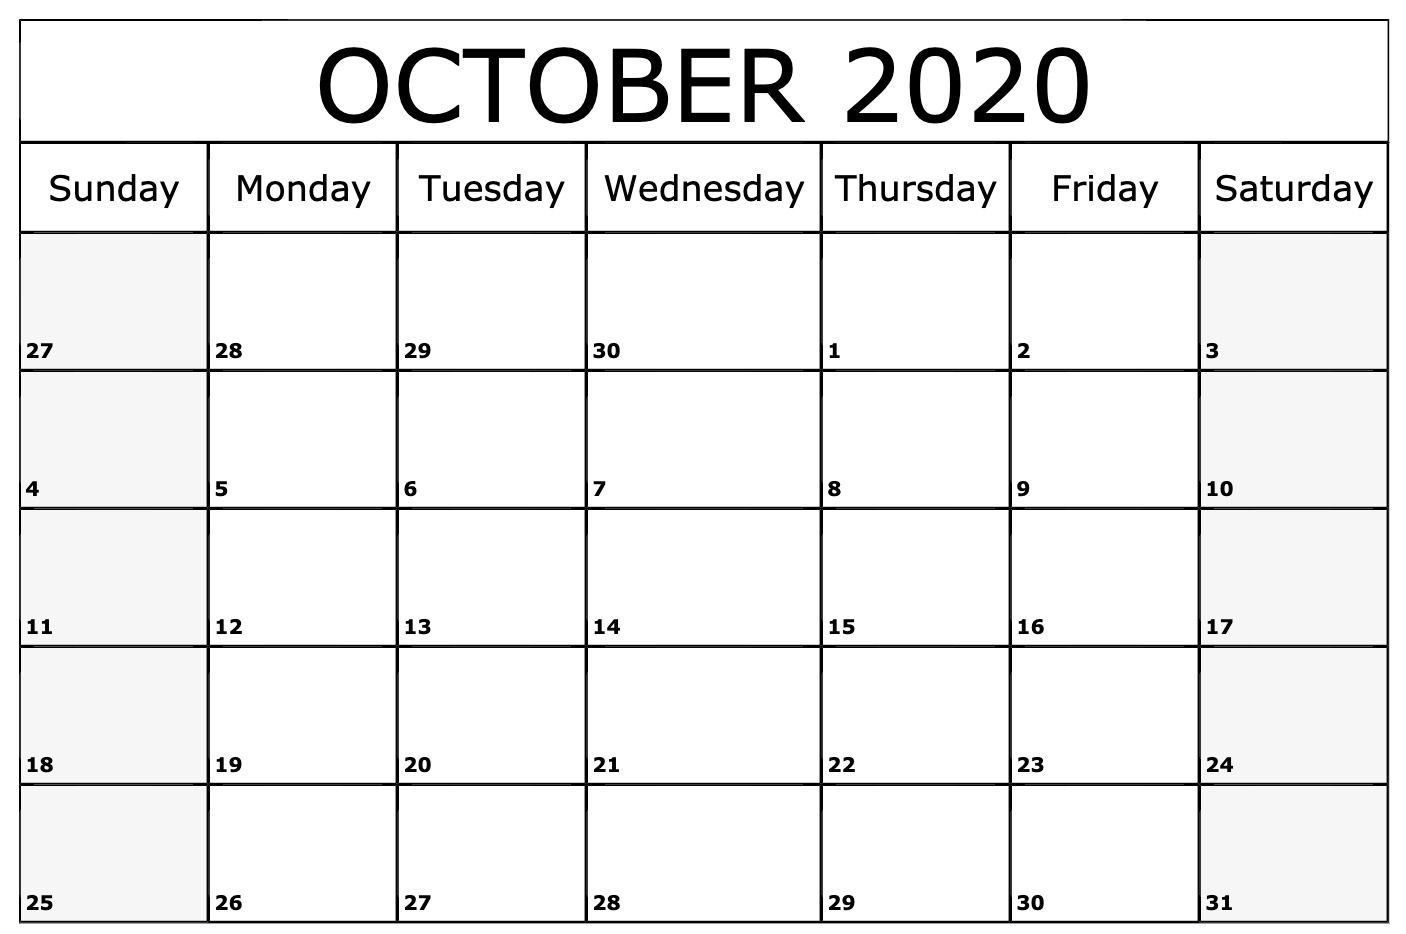 Fillable Calendar For October 2020 PDF